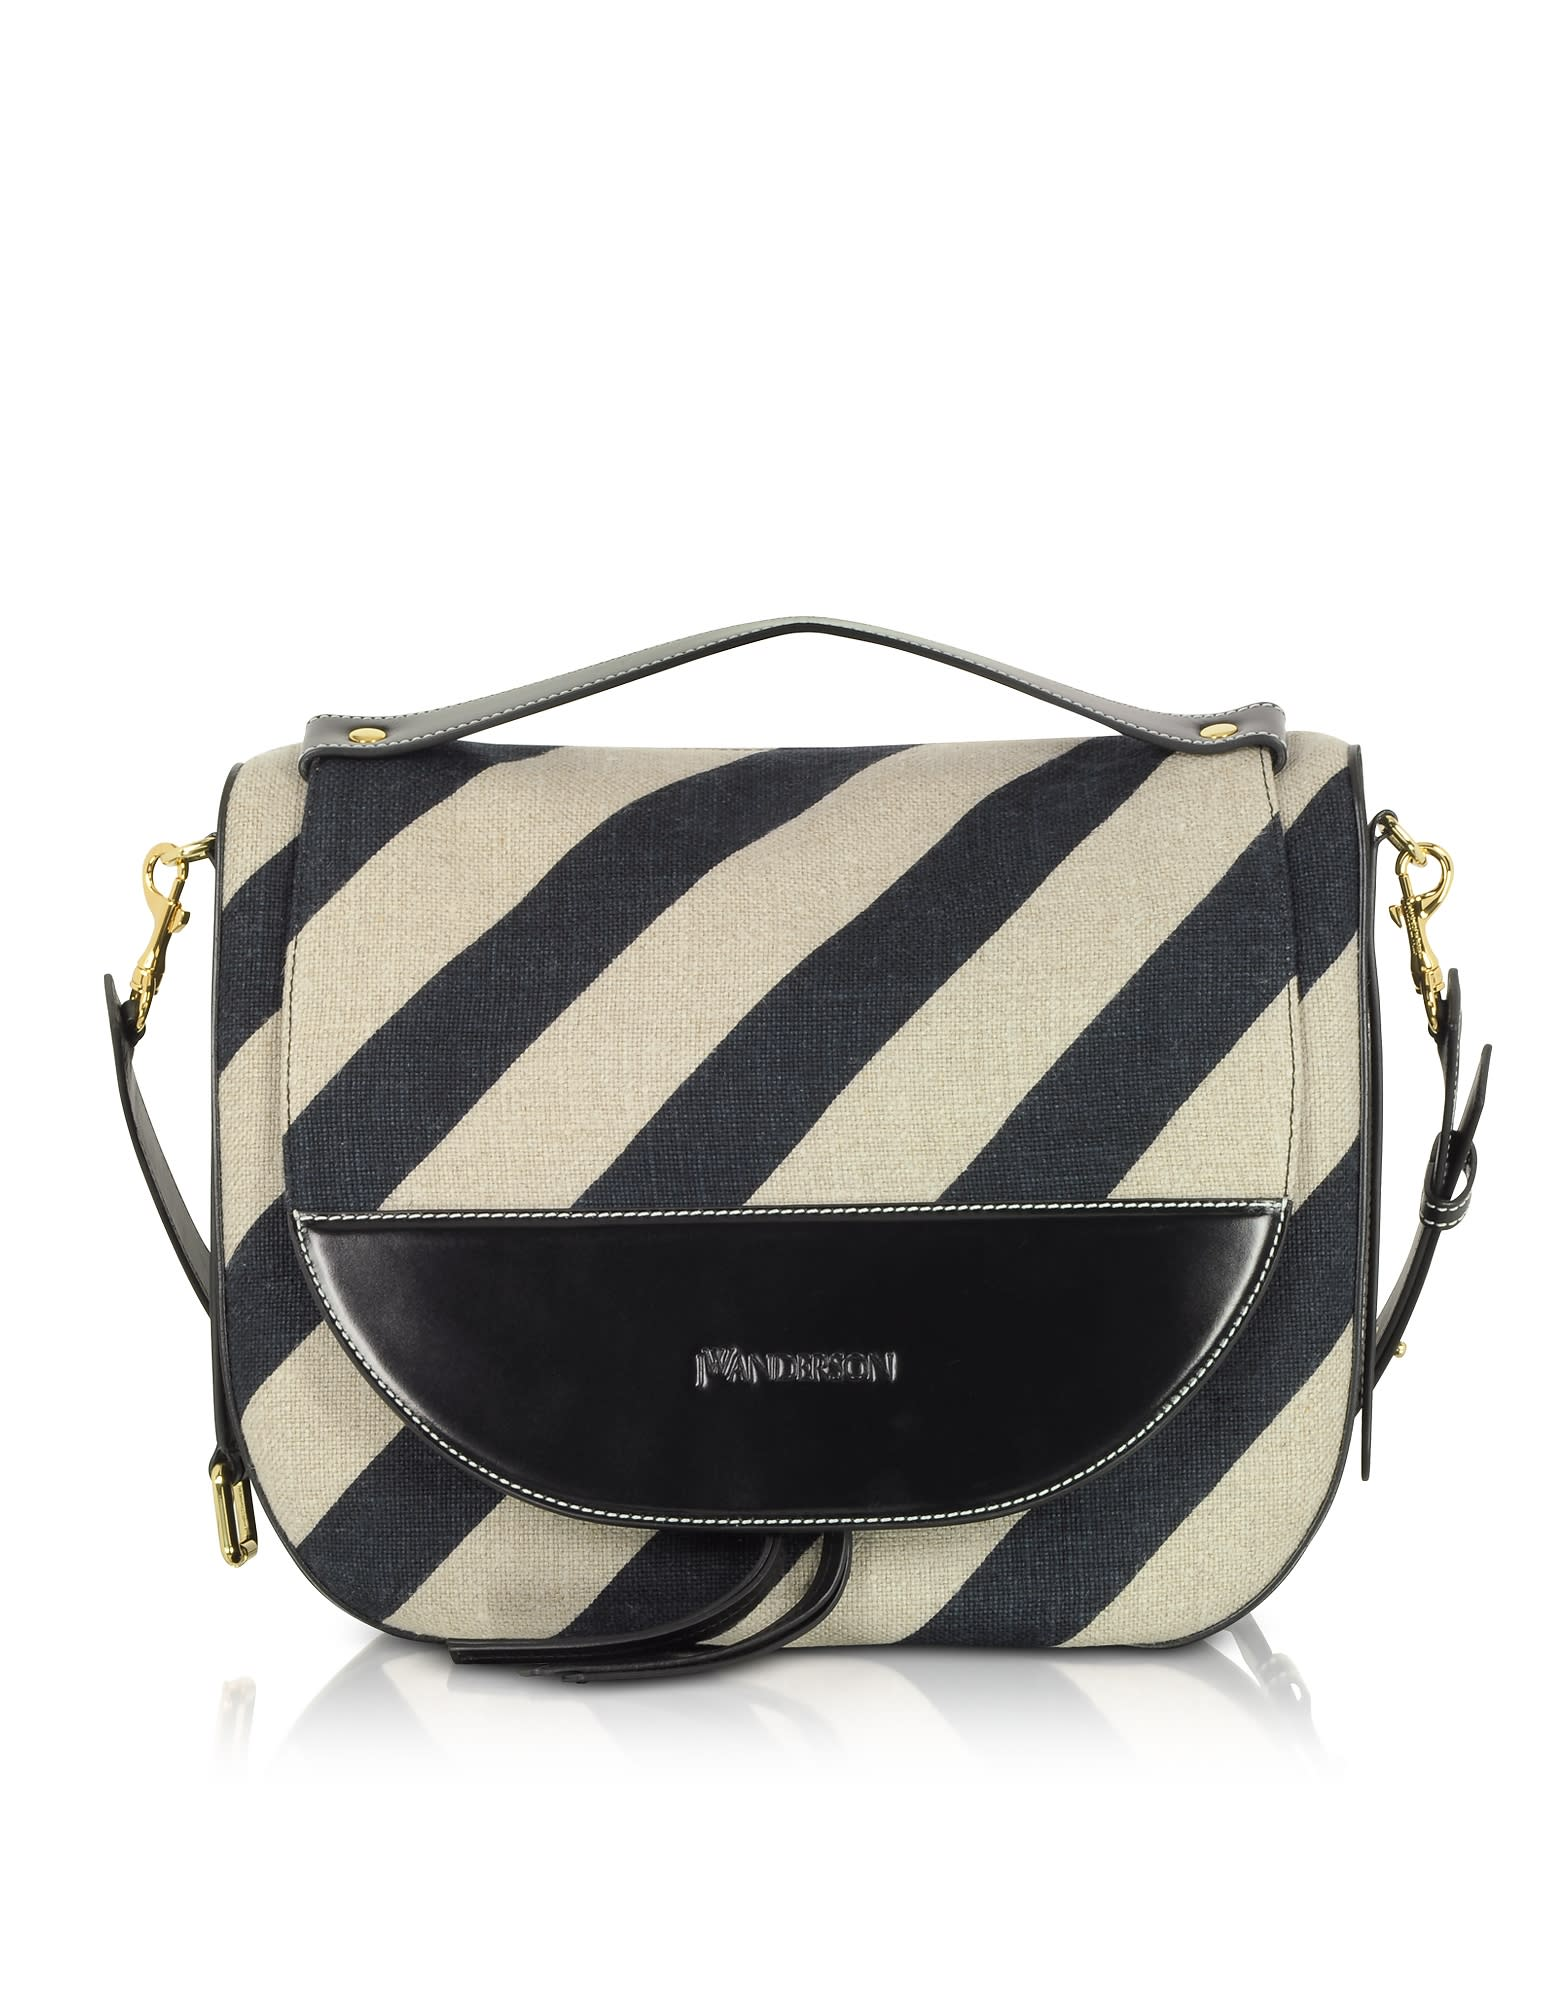 Jw Anderson Black And Off White Striped Linen Moon Shoulder Bag